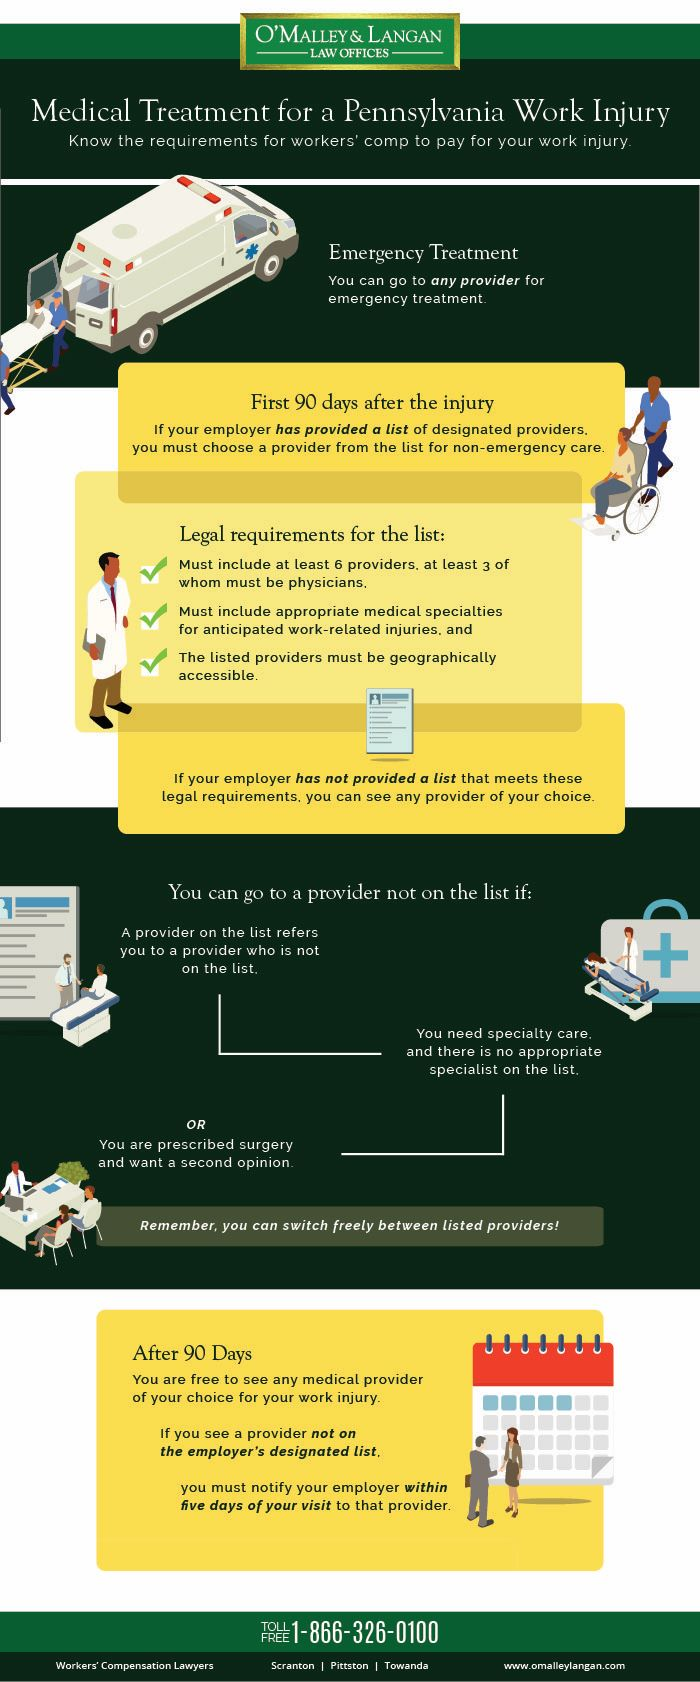 Medical Treatment for Pennsylvania Work Injury infographic